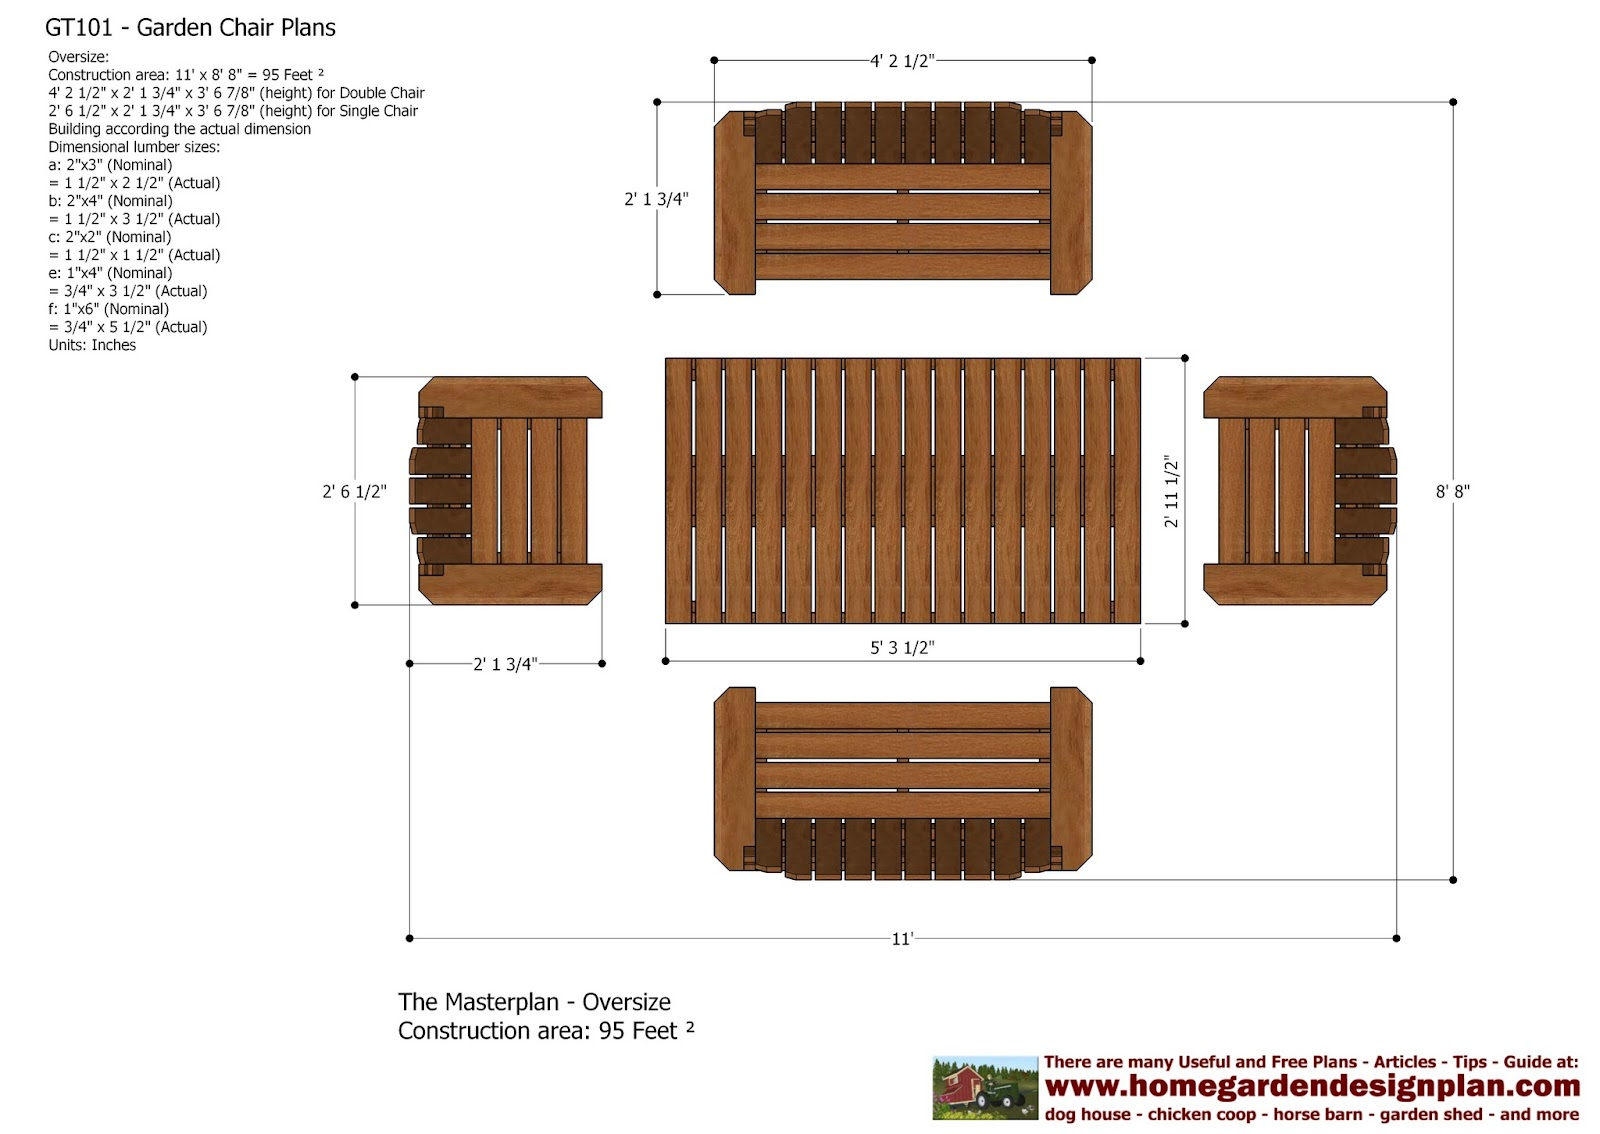 home garden plans gt101 garden teak table plans out On furniture plans